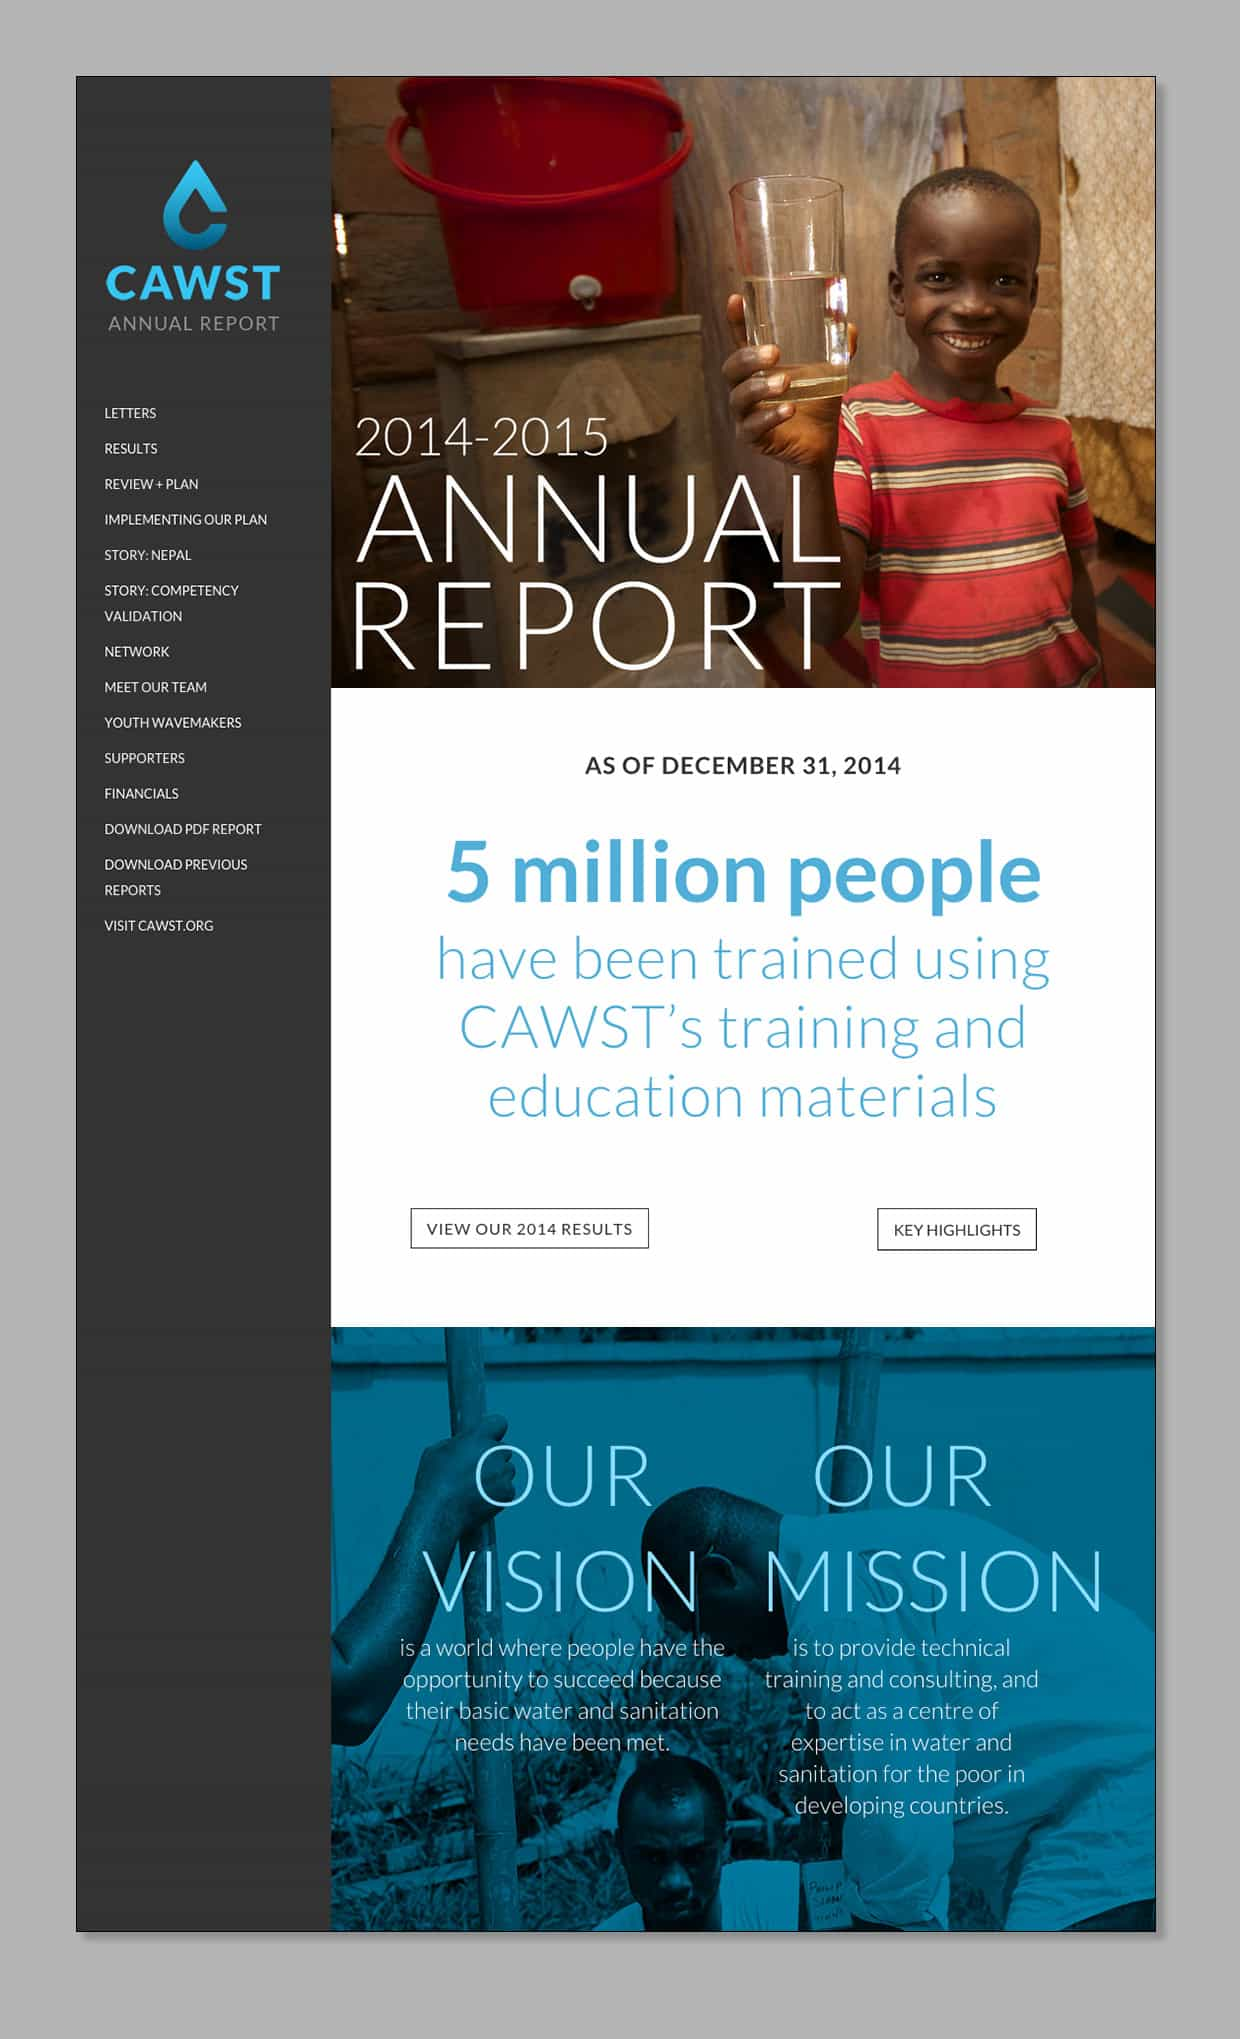 CAWST annual report